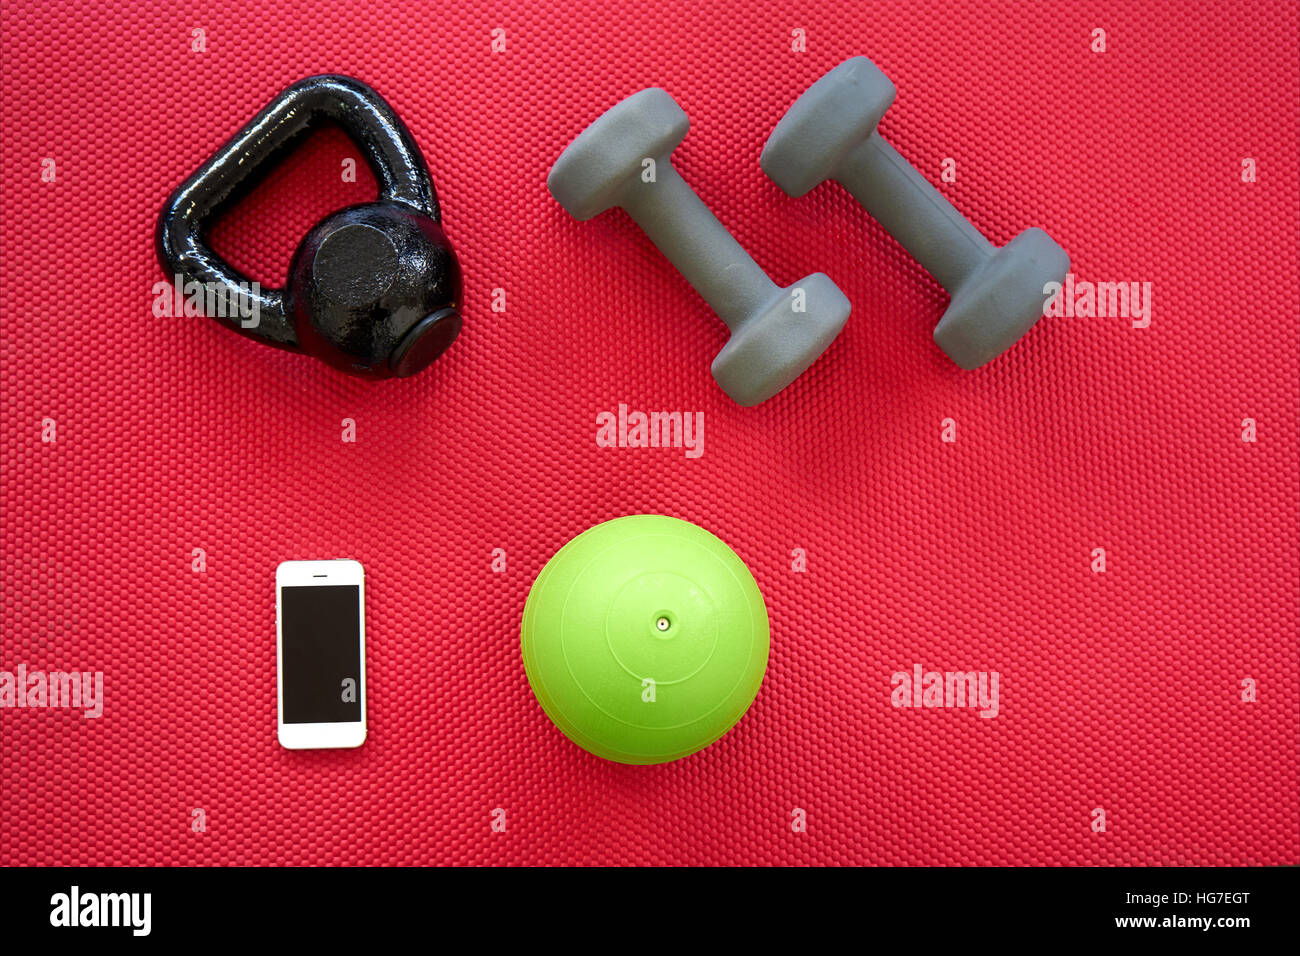 Gym equipment on red mat background, top view - Stock Image